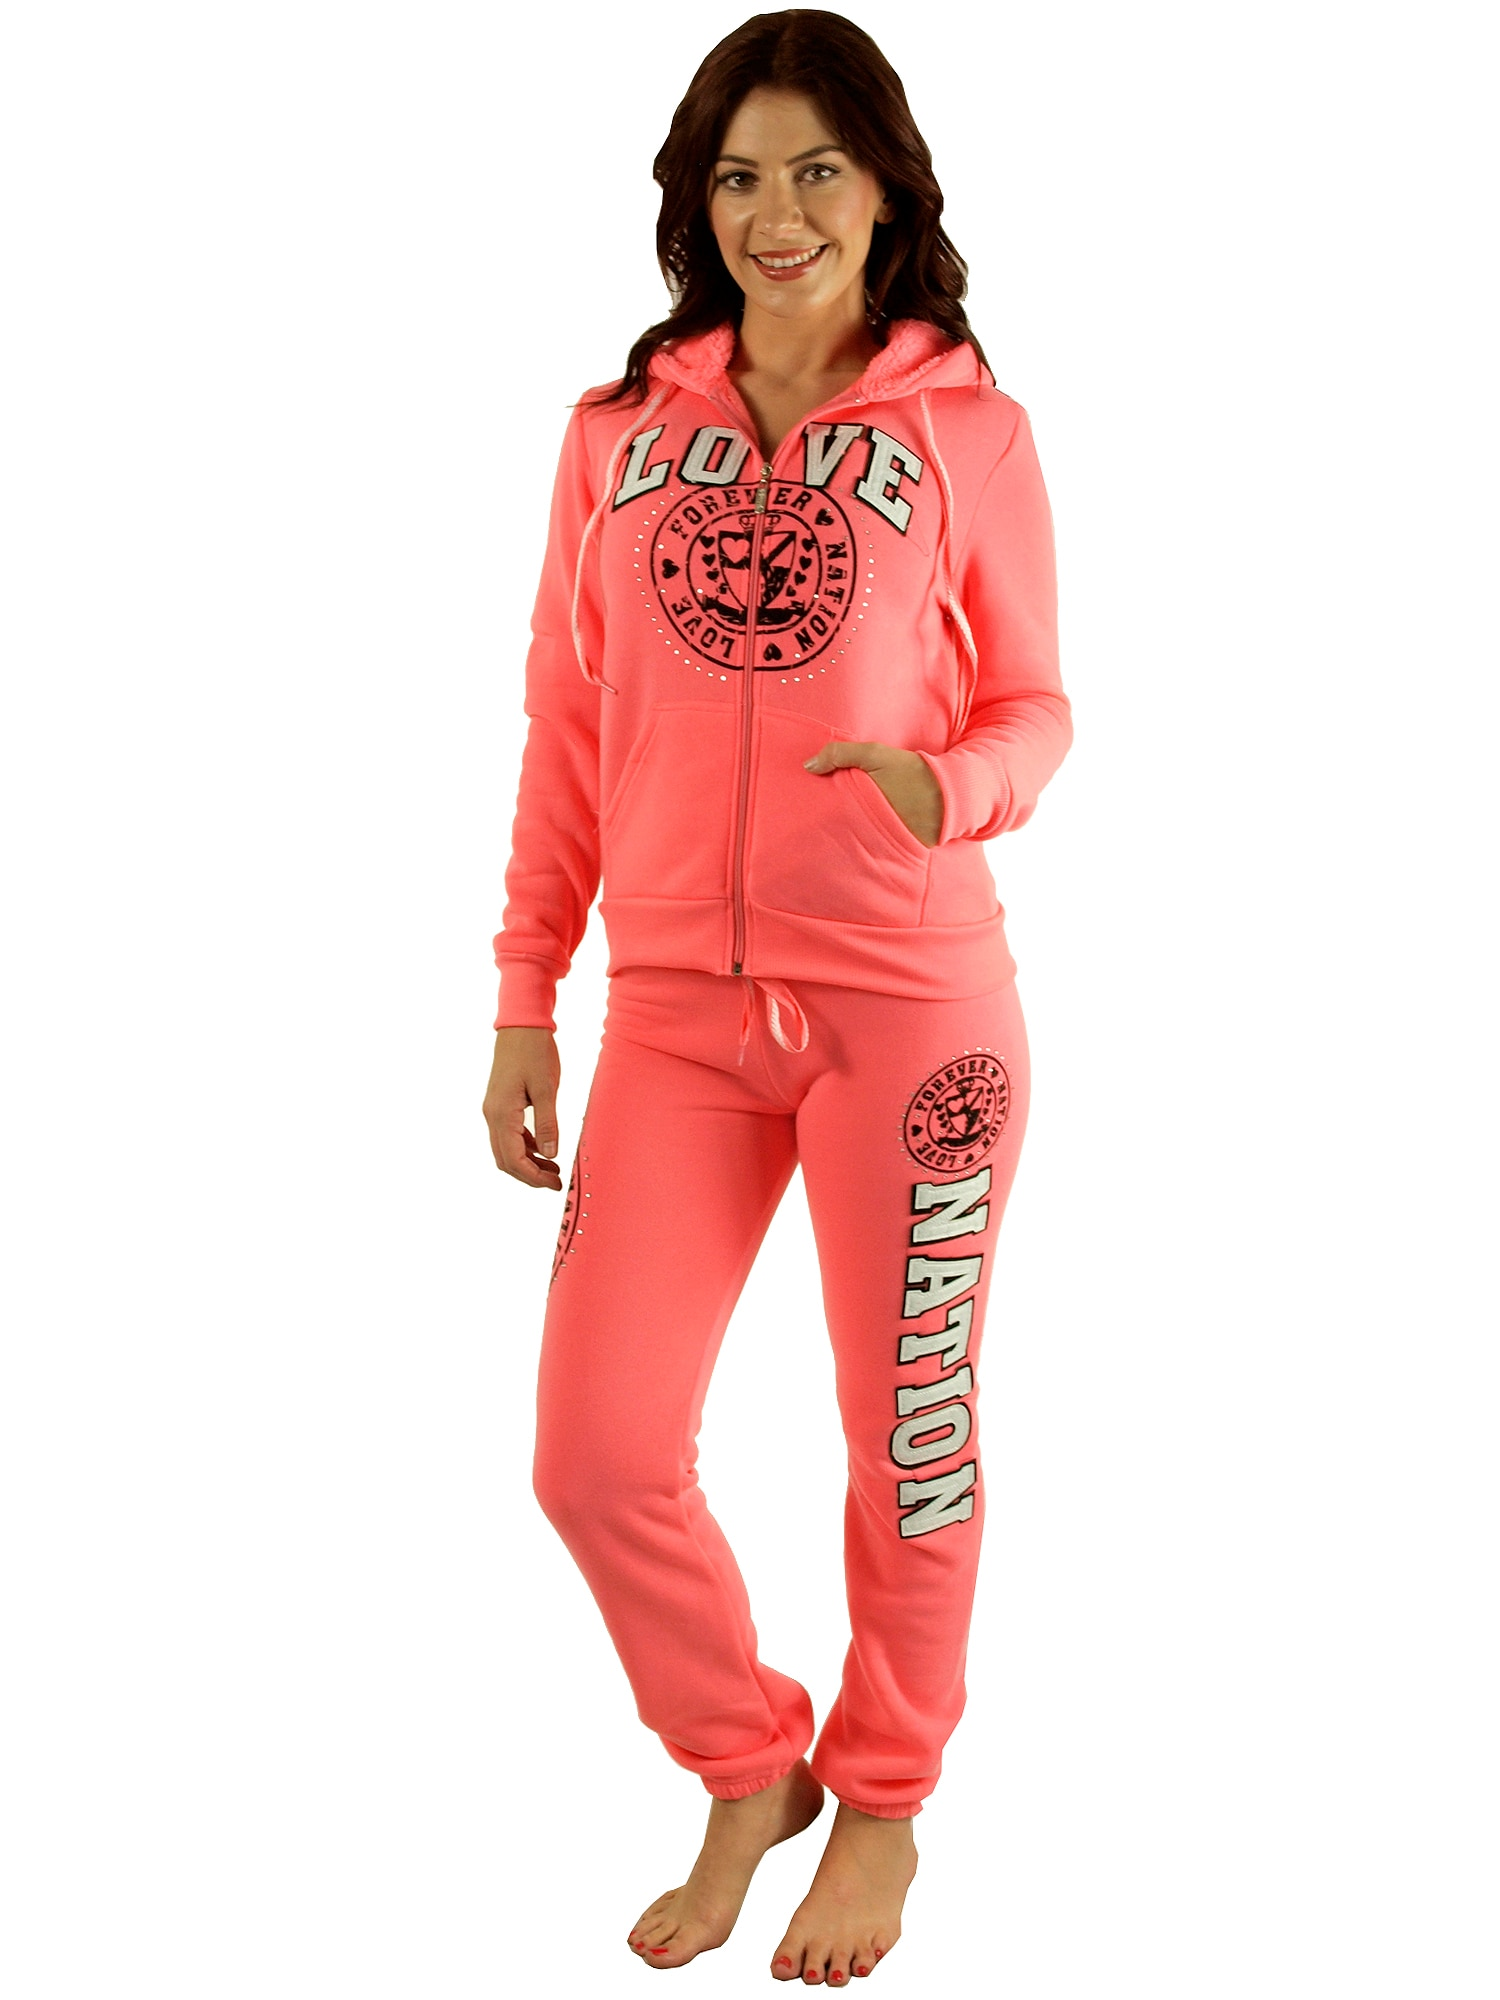 Special One Ladies' Fleece Fur-lined Warm-up Set with Love Nation Appliques